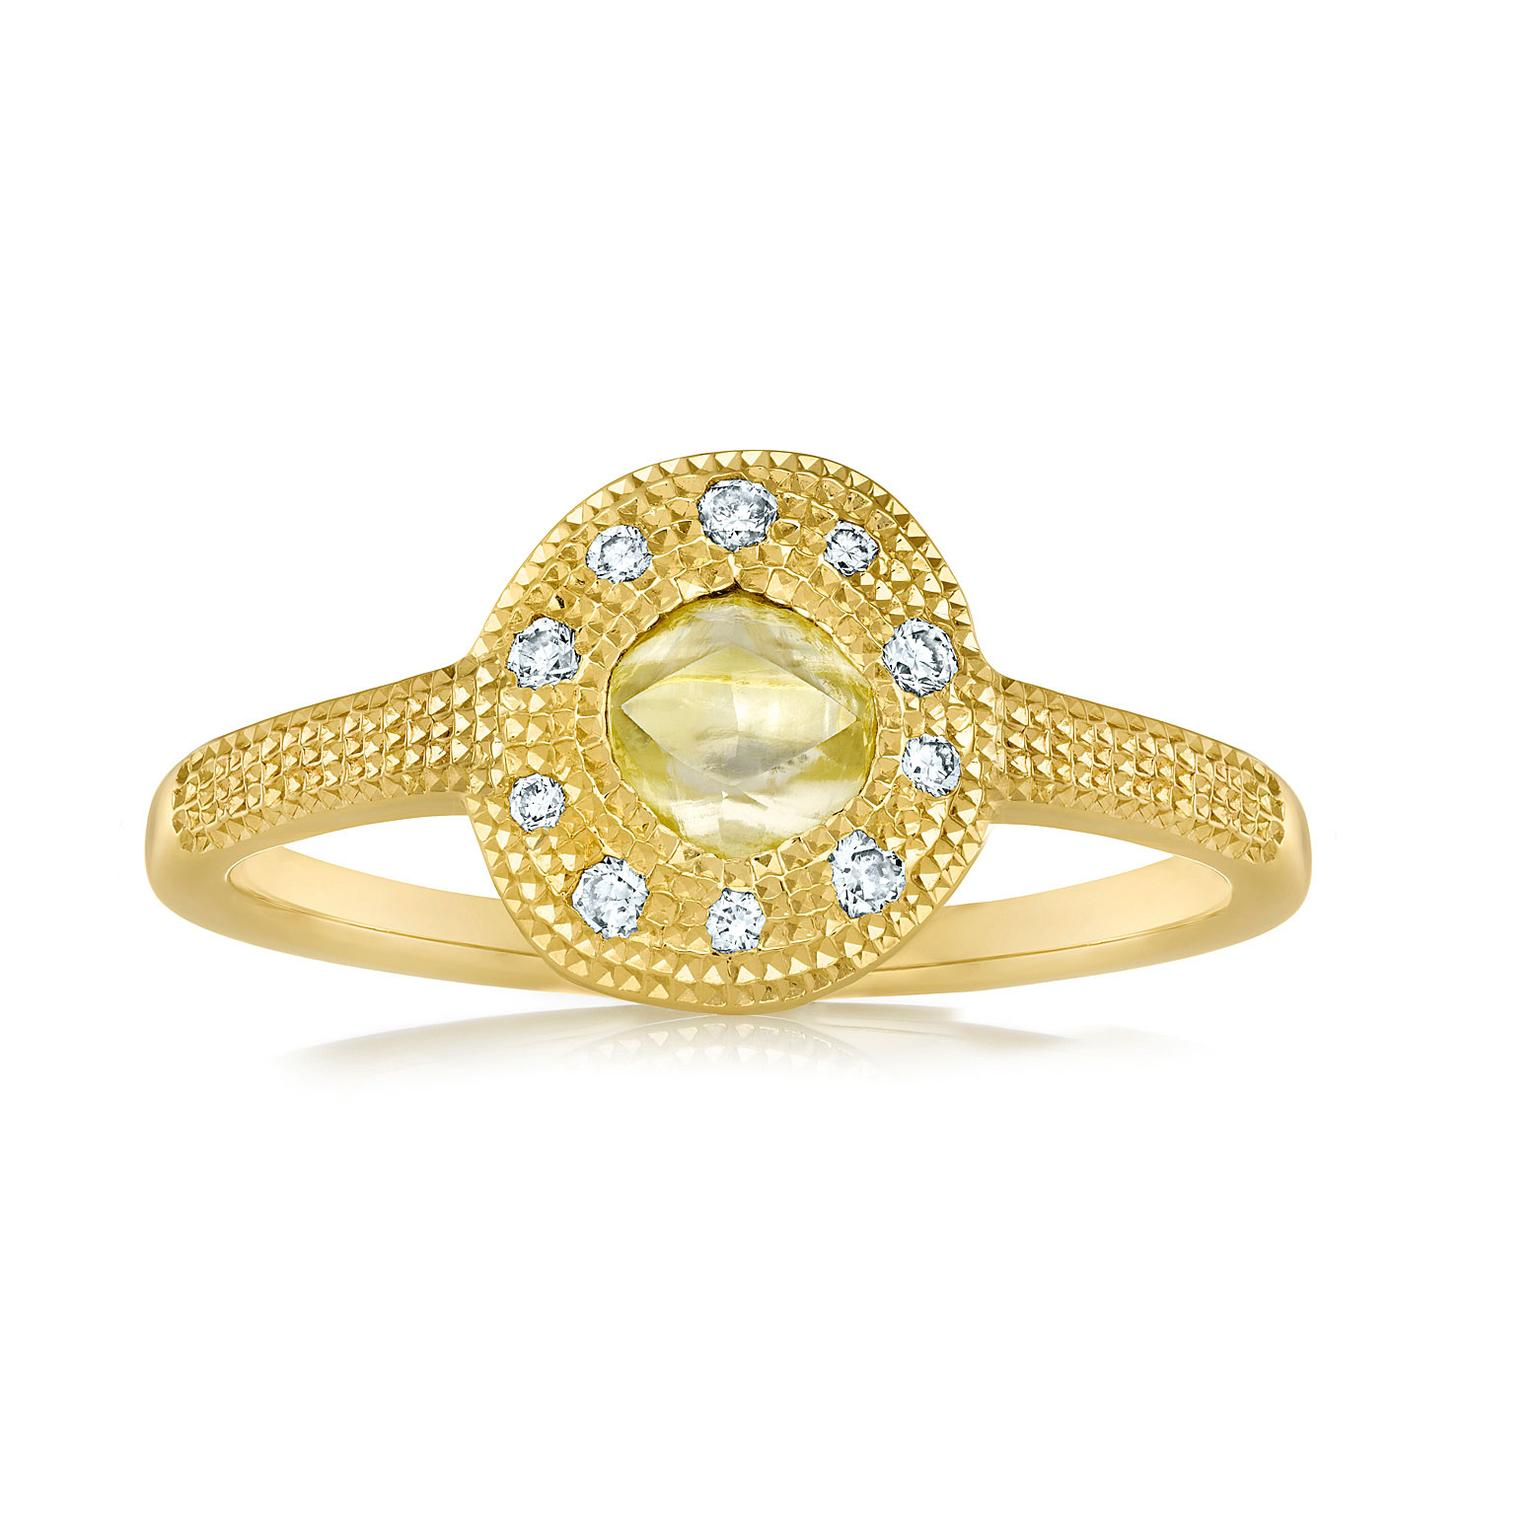 Talisman yellow gold solitaire ring by De Beers